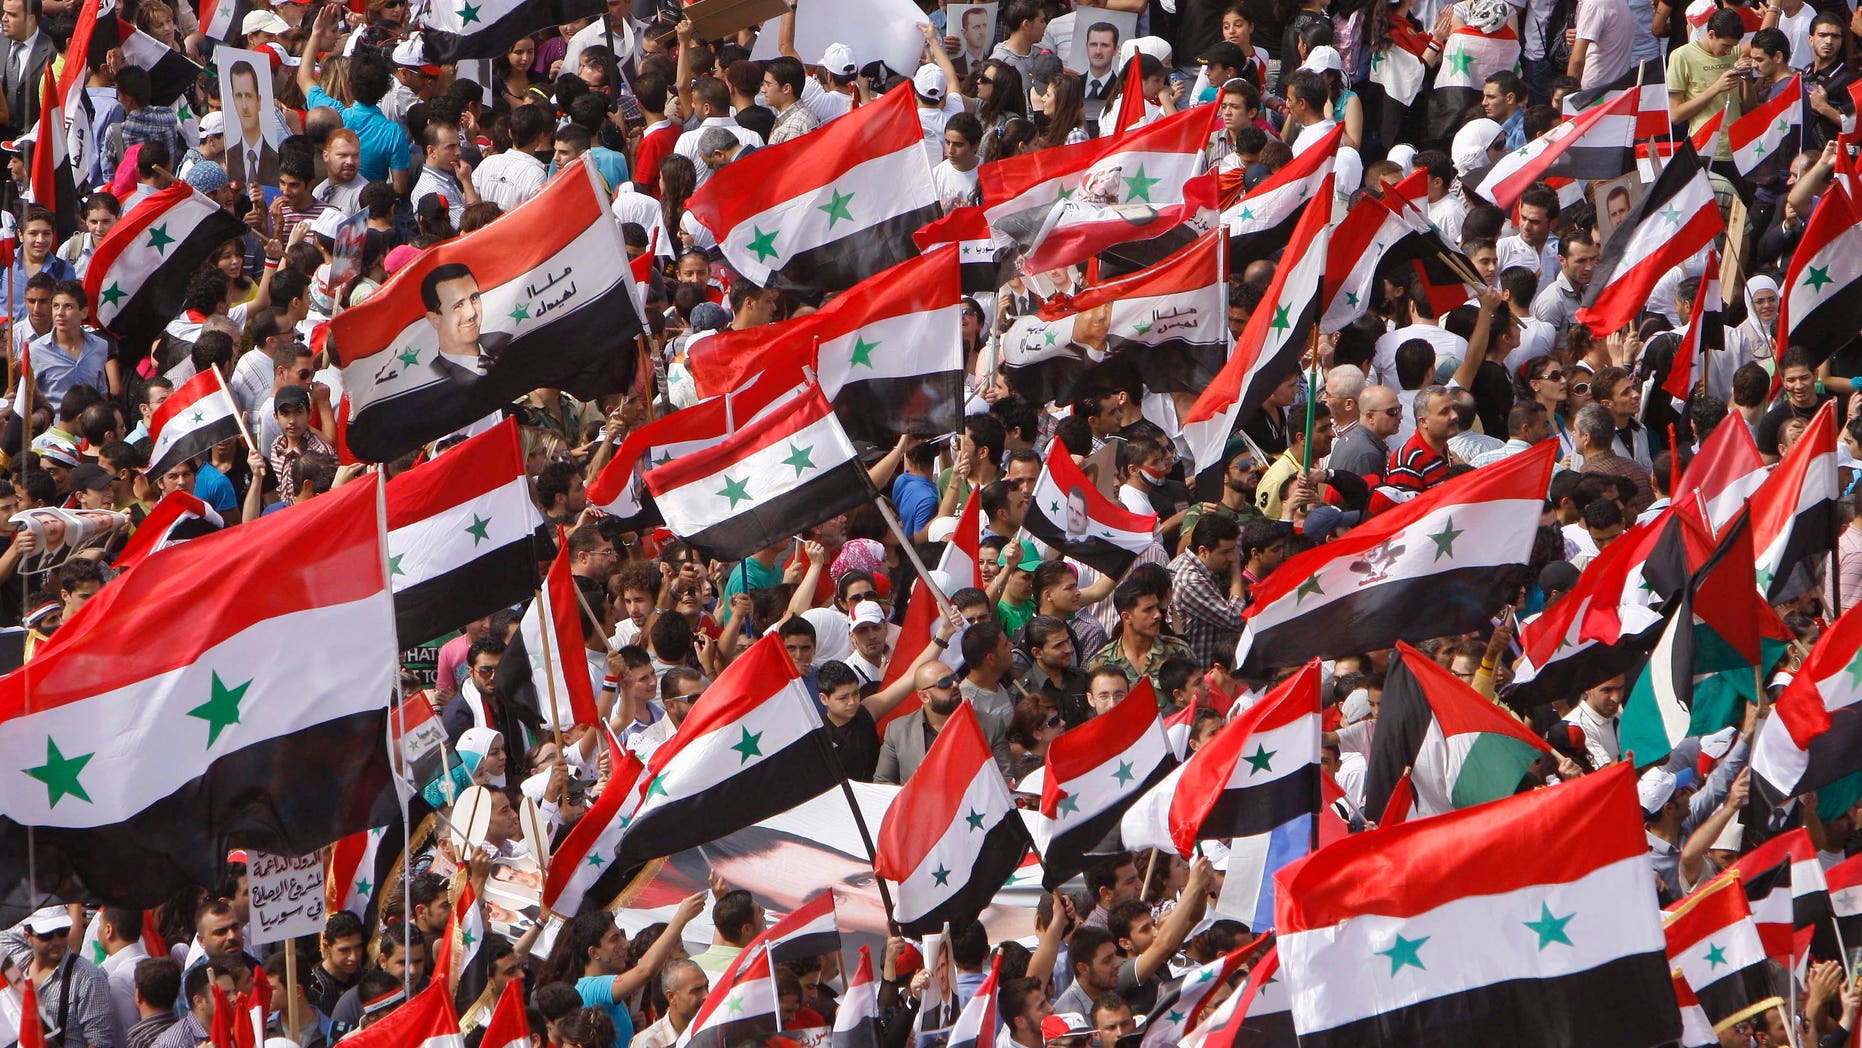 Syrian regime supporters wave their national flags during a demonstration to show their support for President Bashar Assad and to thanks Russia and China for blocking a U.N. Security Council resolution condemning Syria for its brutal crackdown, in Damascus, Syria, on Wednesday Oct. 12, 2011.